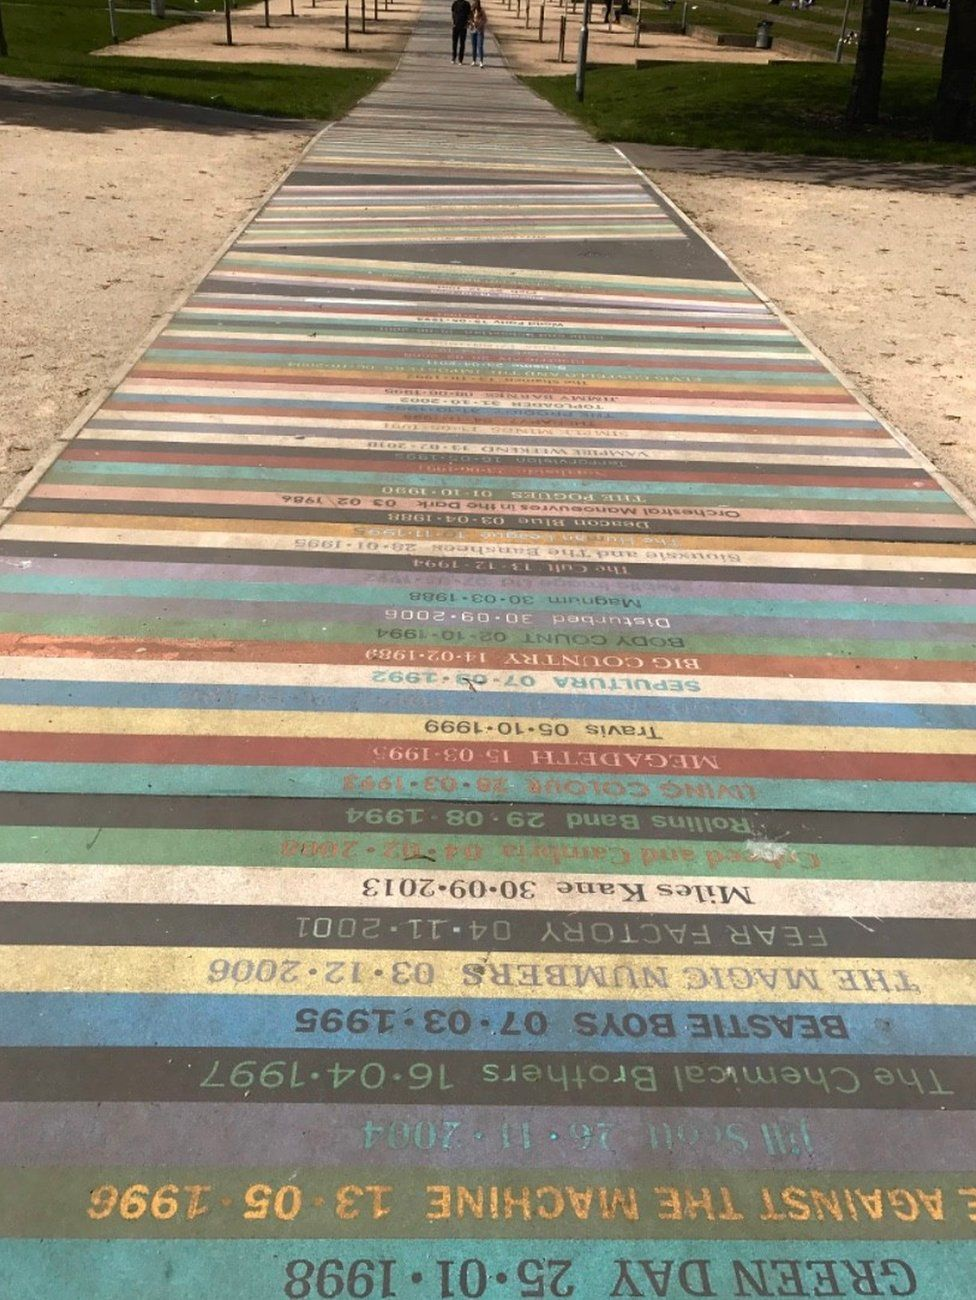 Pathway with names of bands on